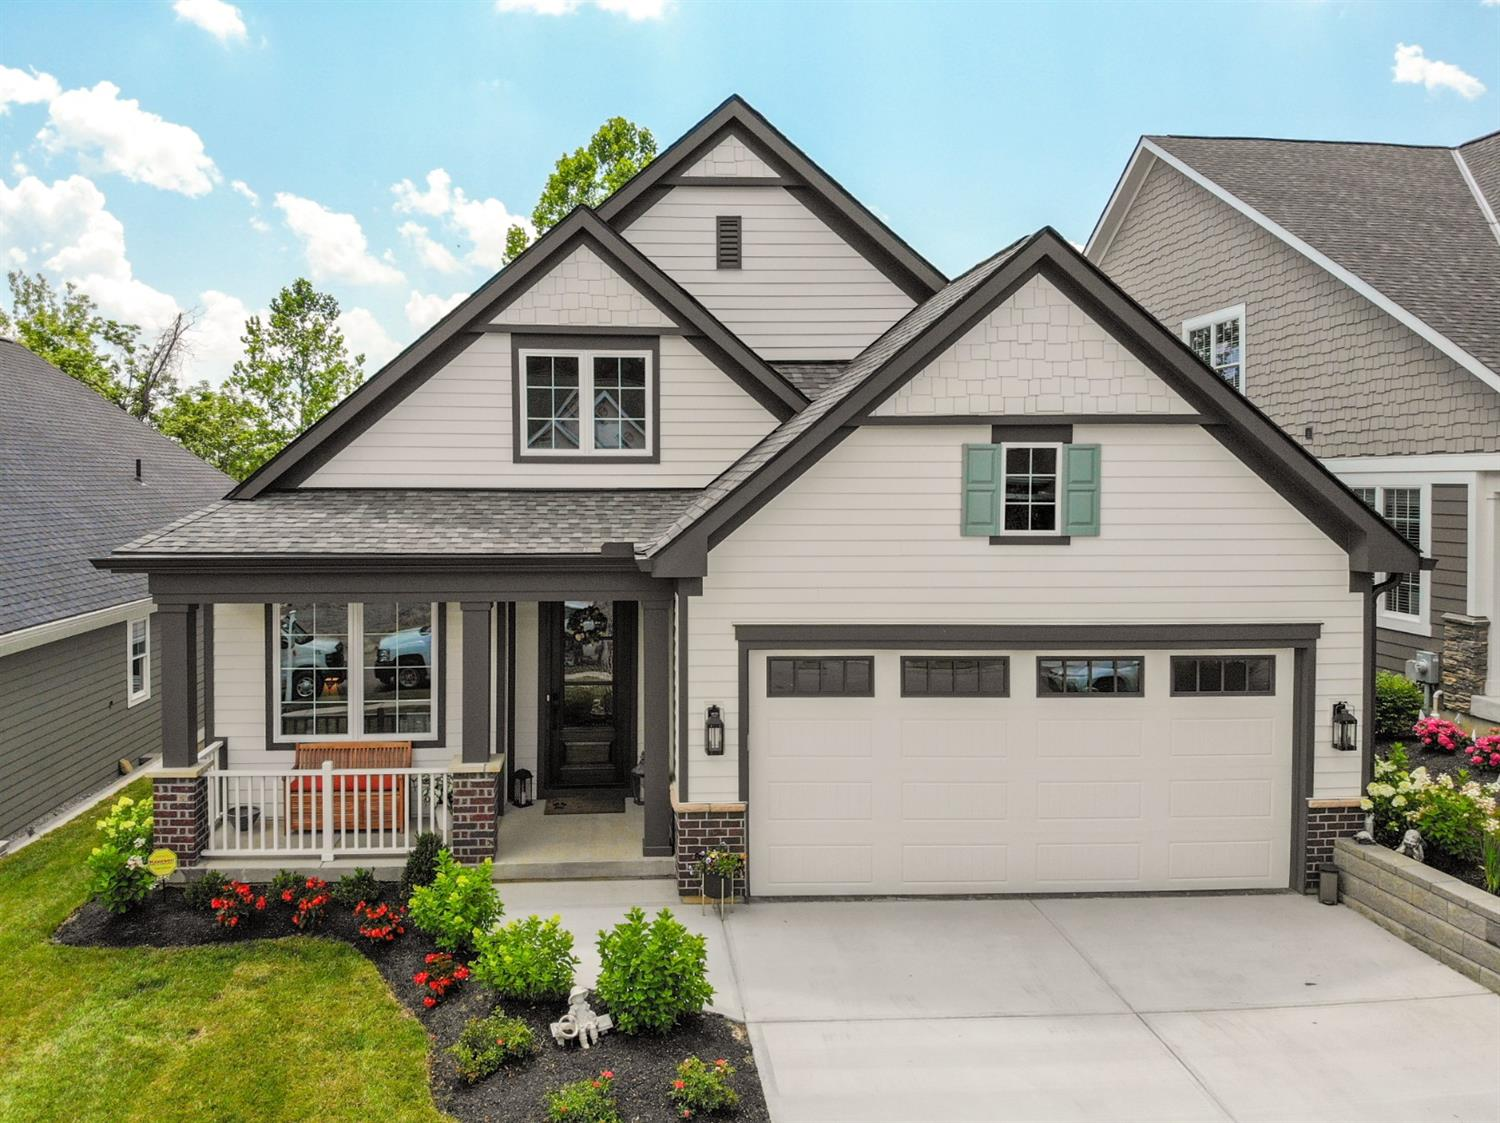 9813 Orchard Trail, Montgomery, Ohio 45242, 4 Bedrooms Bedrooms, 11 Rooms Rooms,3 BathroomsBathrooms,Single Family Residence,For Sale,Orchard Trail,1707271